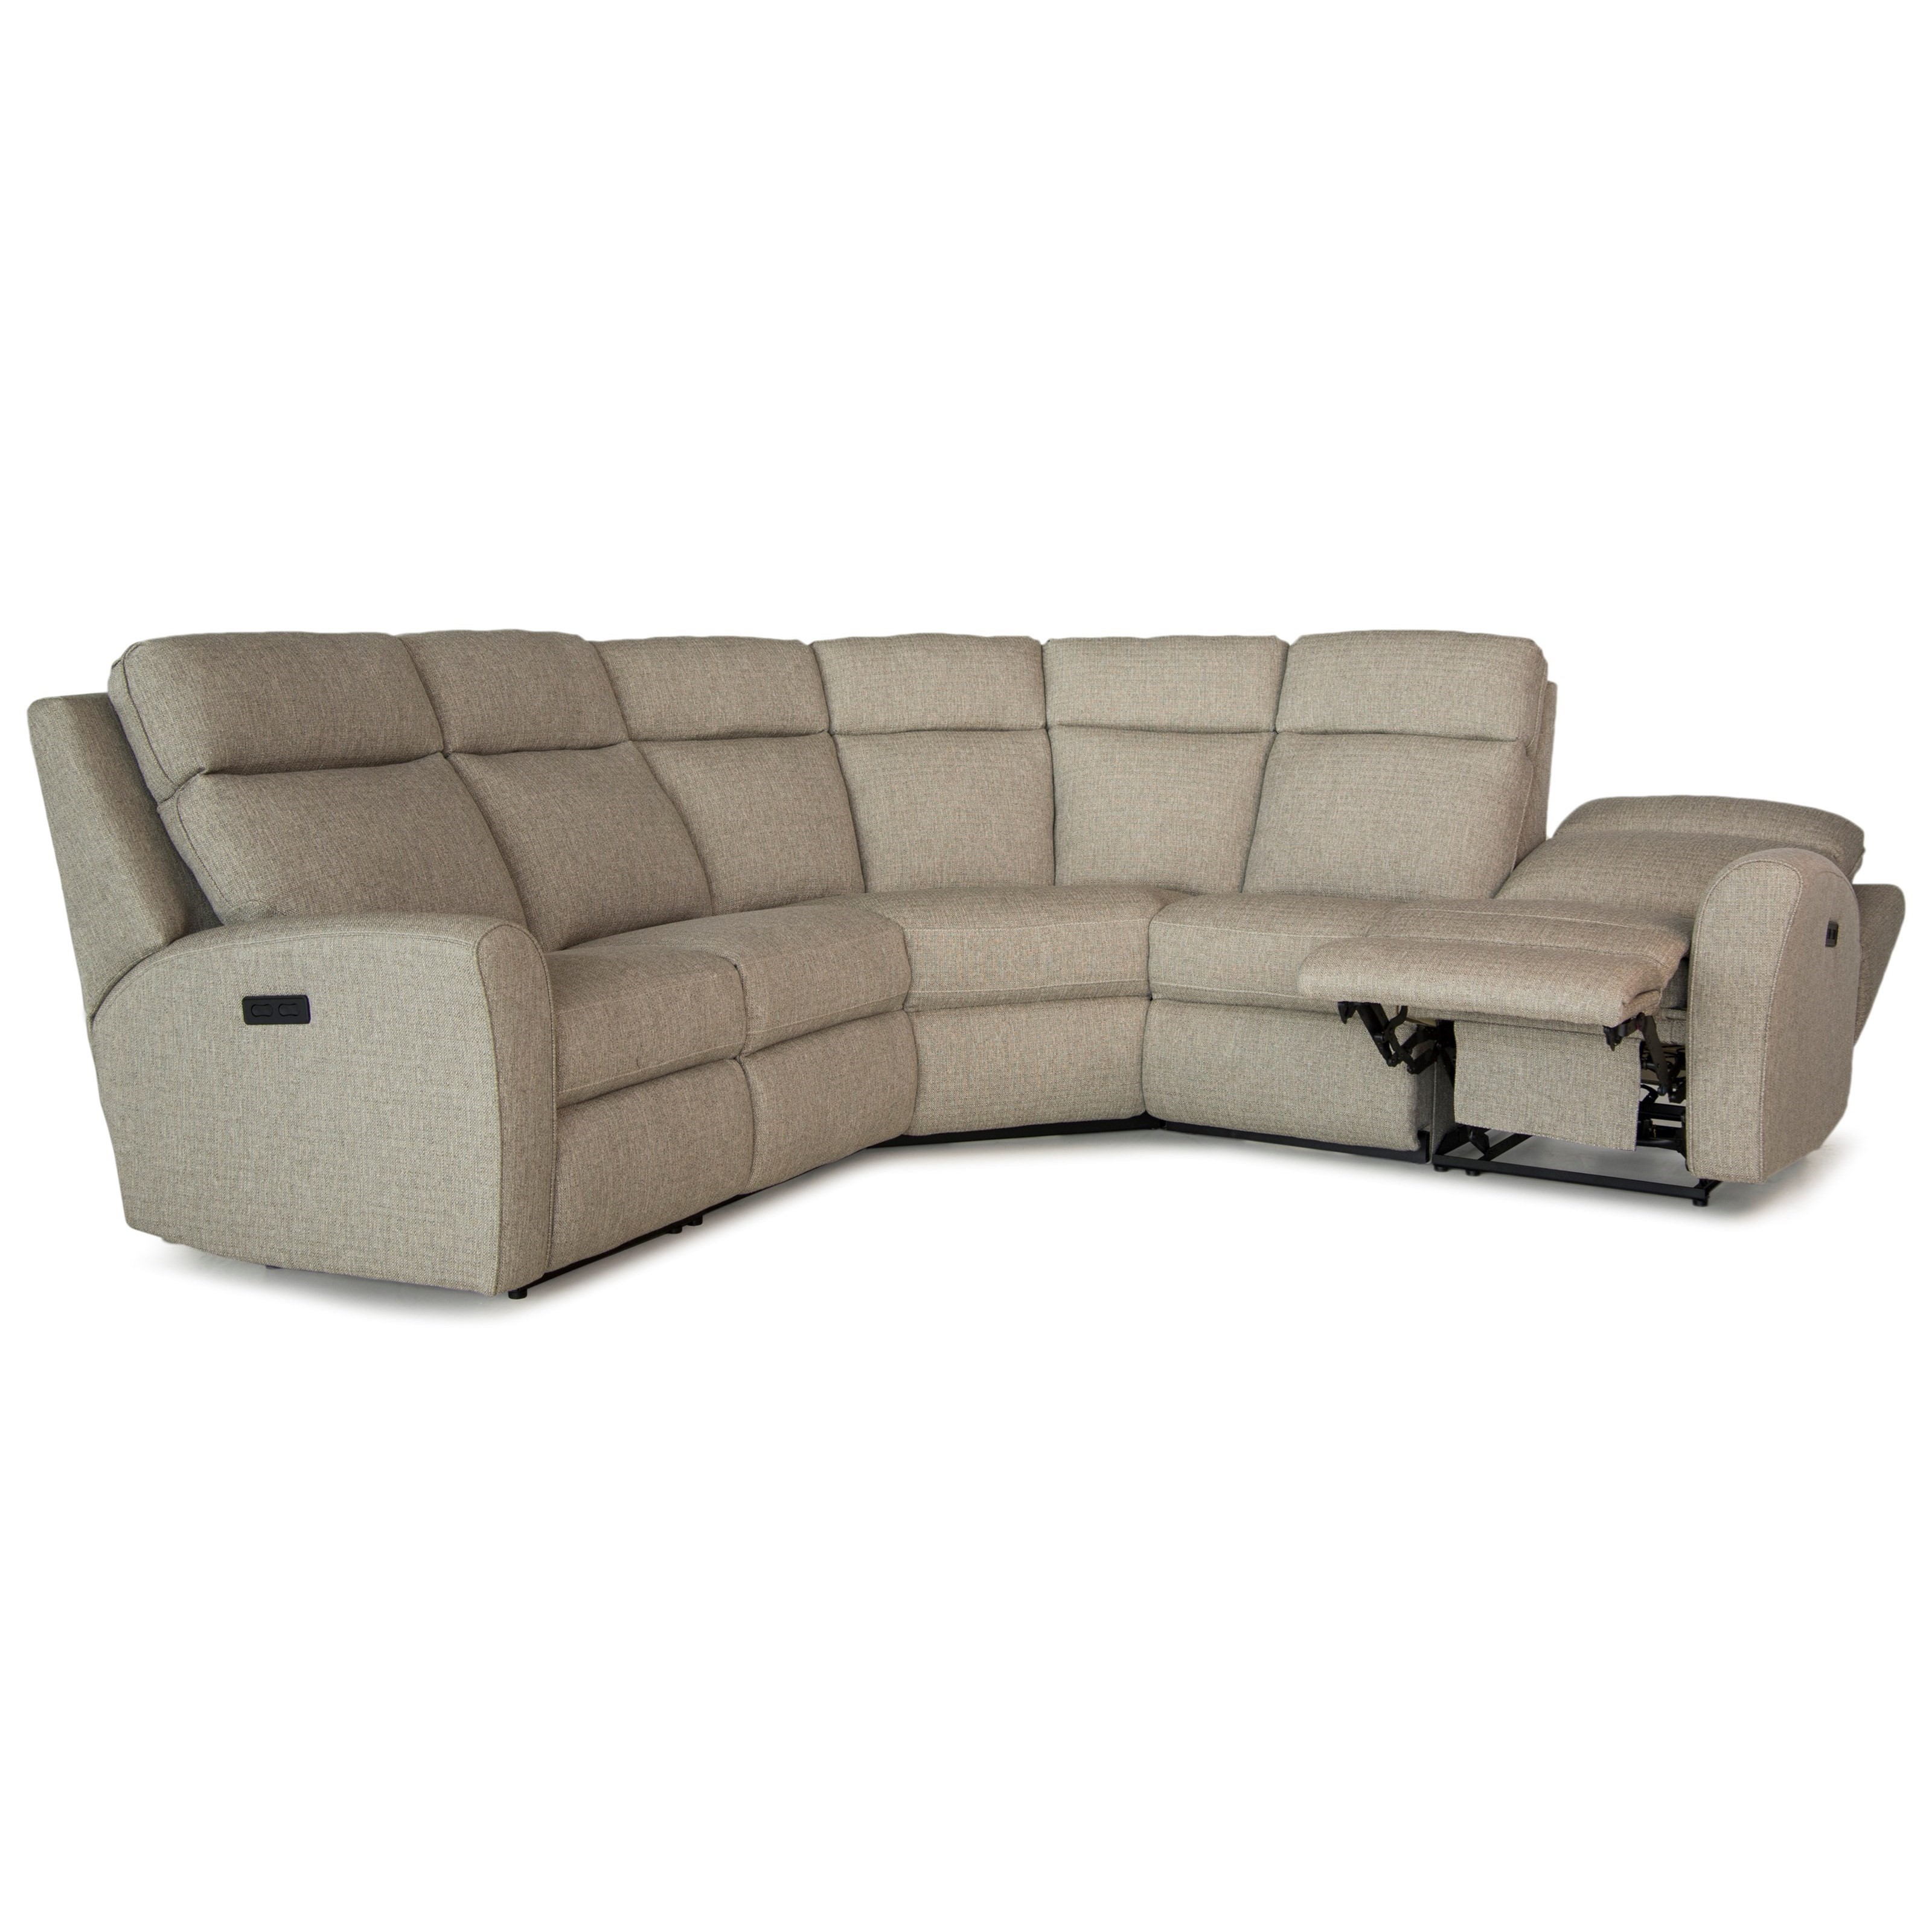 Awe Inspiring Casual Motorized Reclining Sectional Sofa With Flared Arms Gmtry Best Dining Table And Chair Ideas Images Gmtryco